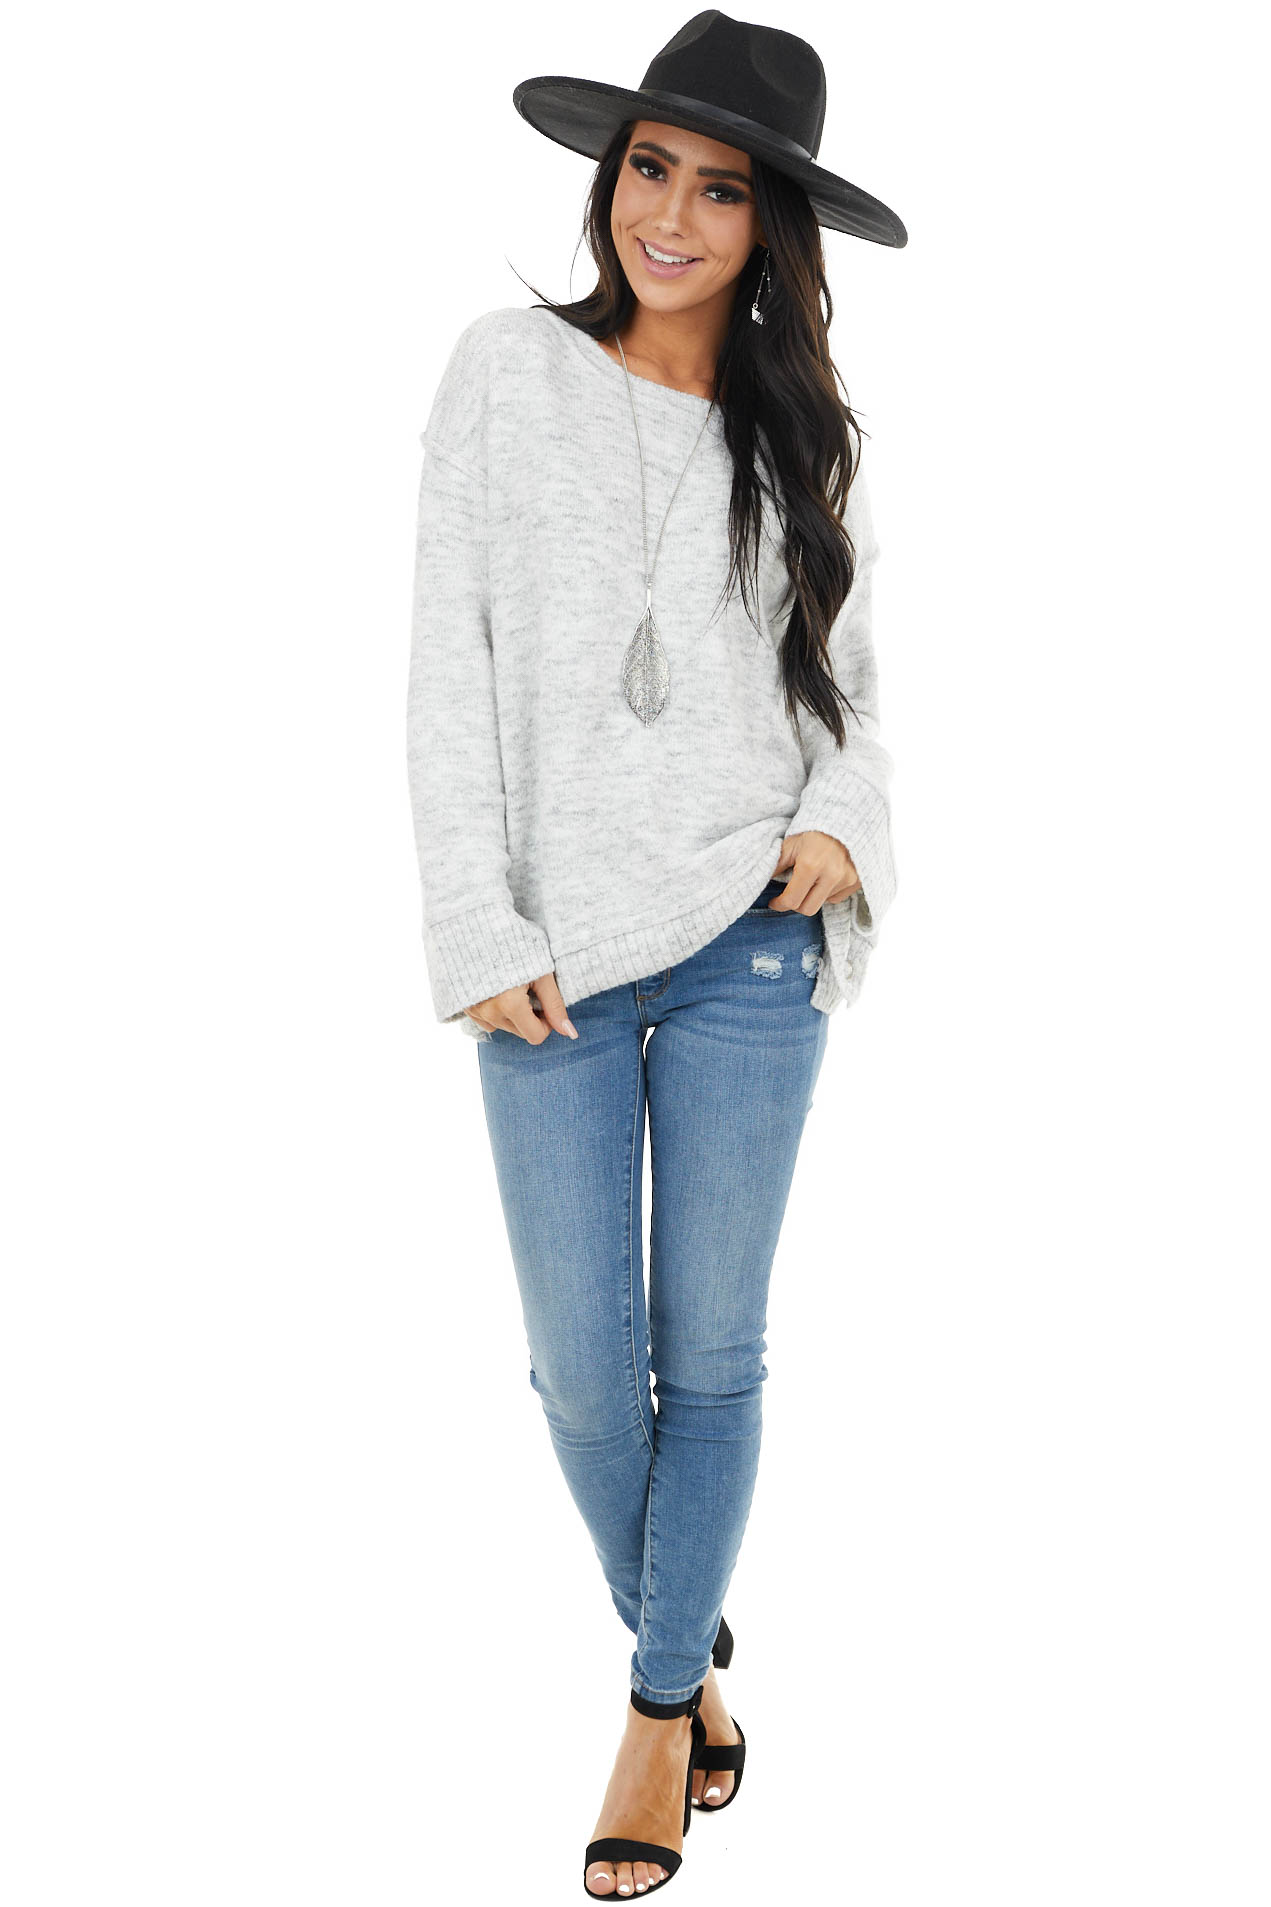 Heather Grey Knit Long Sleeve Sweater with Side Snap Details